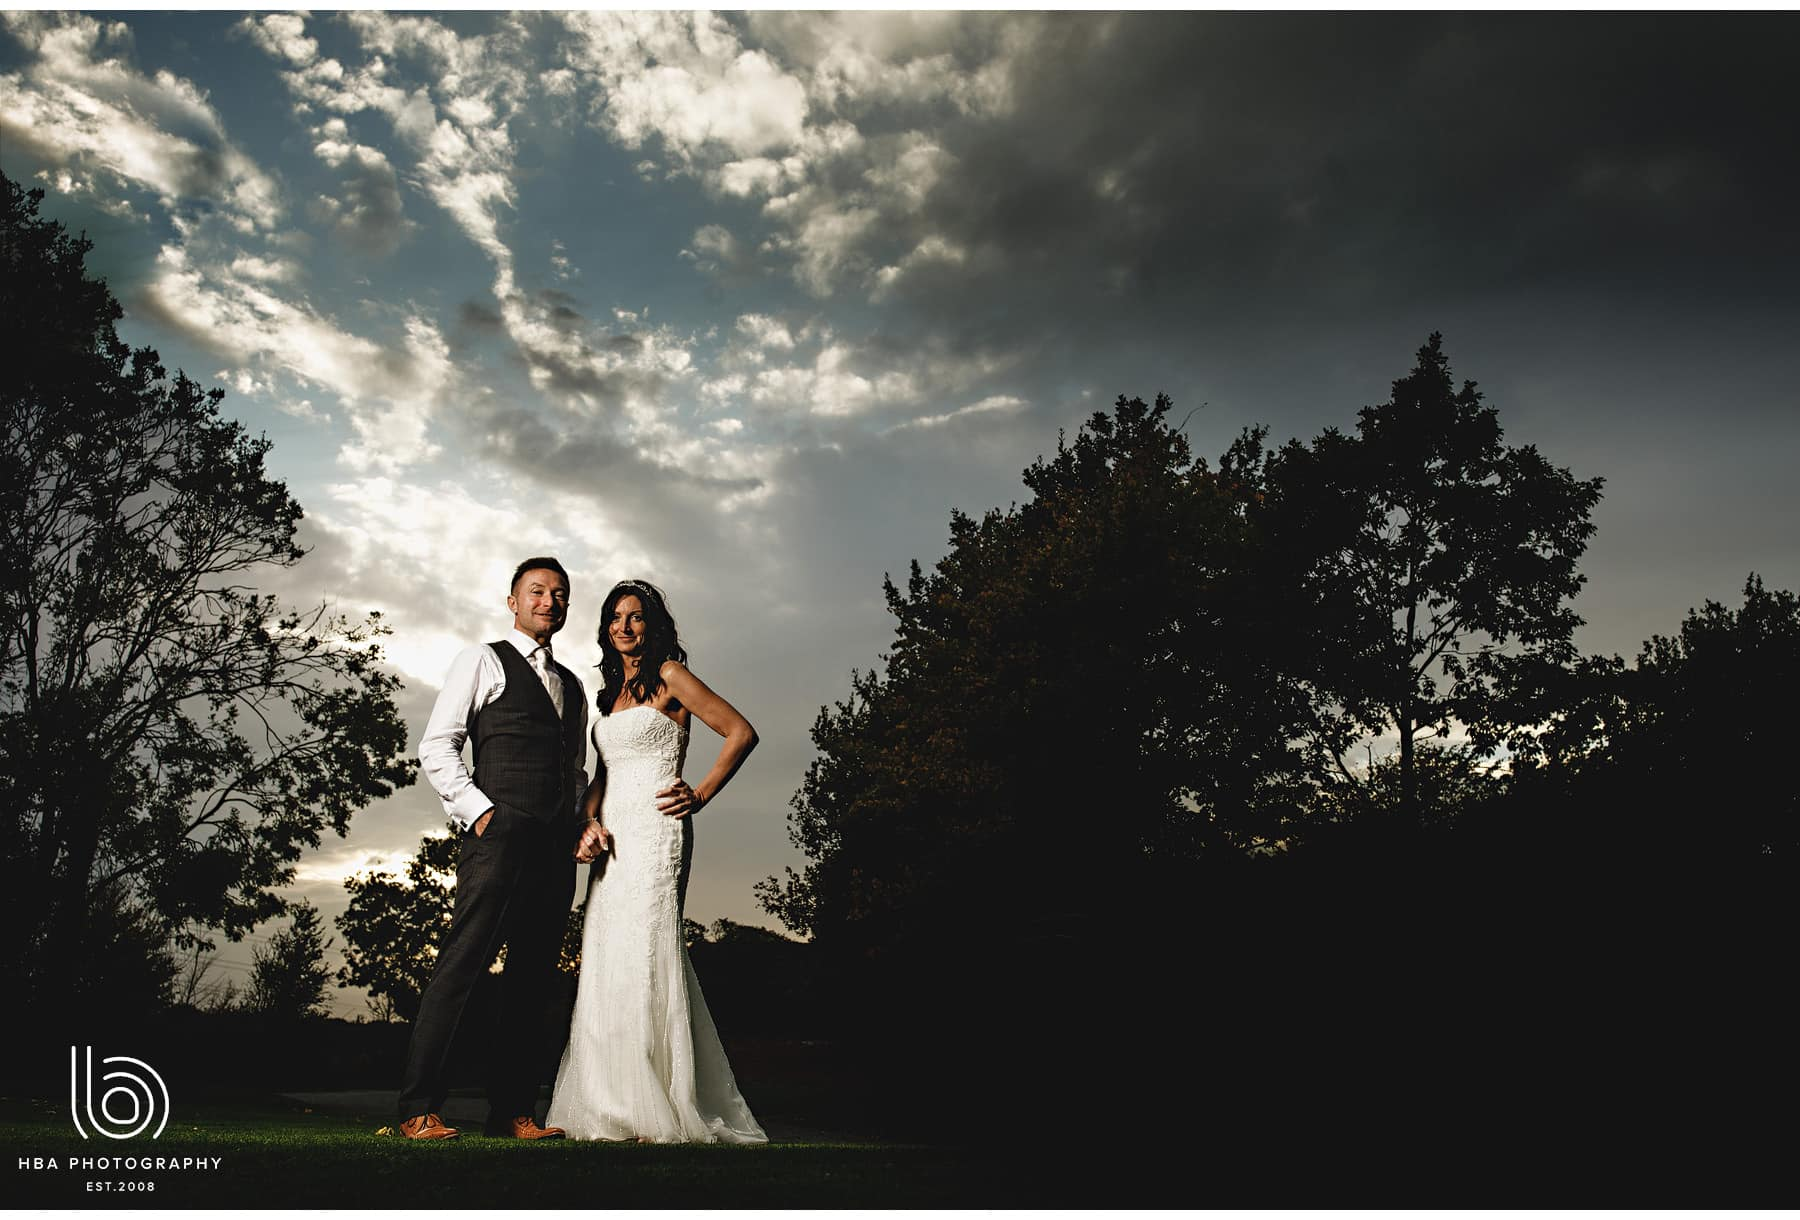 the bride & groom in a dramatic sky